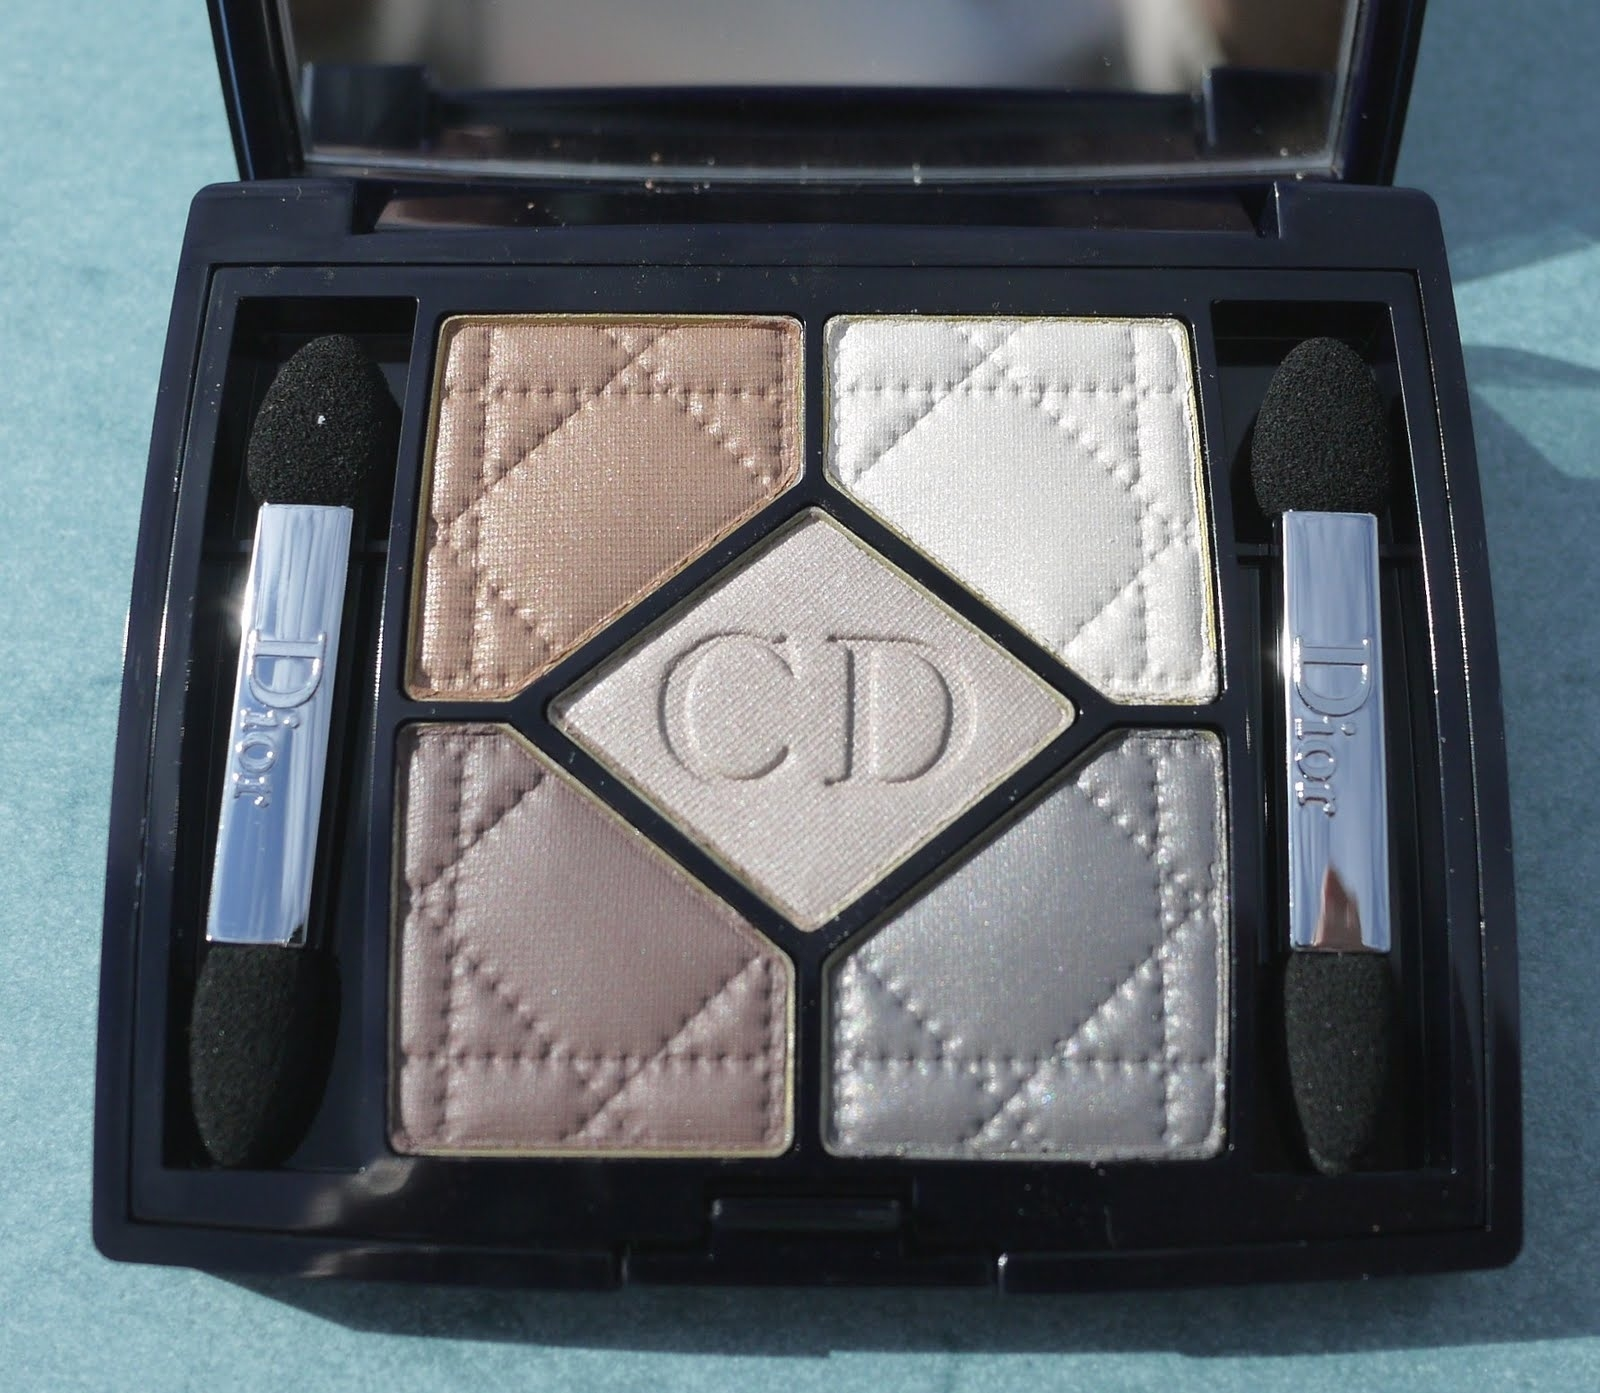 Best Things In Beauty: Dior 5-Colour Couture Color Eyeshadow Palette regarding Best Dior Eyeshadow Palette For Green Eyes